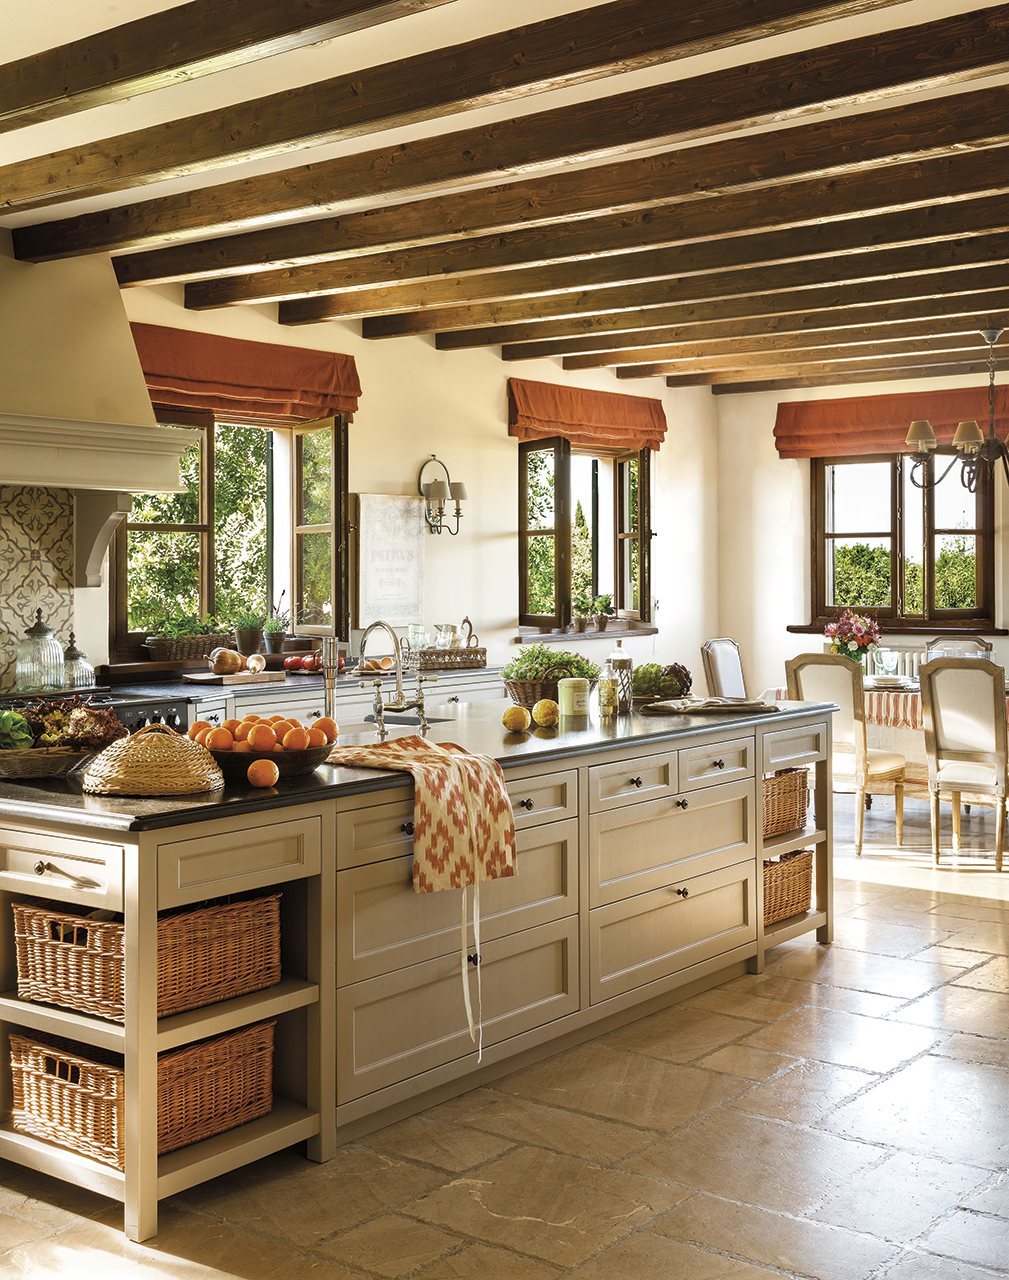 La casa de una princesa en mallorca - Pinterest country kitchen ...